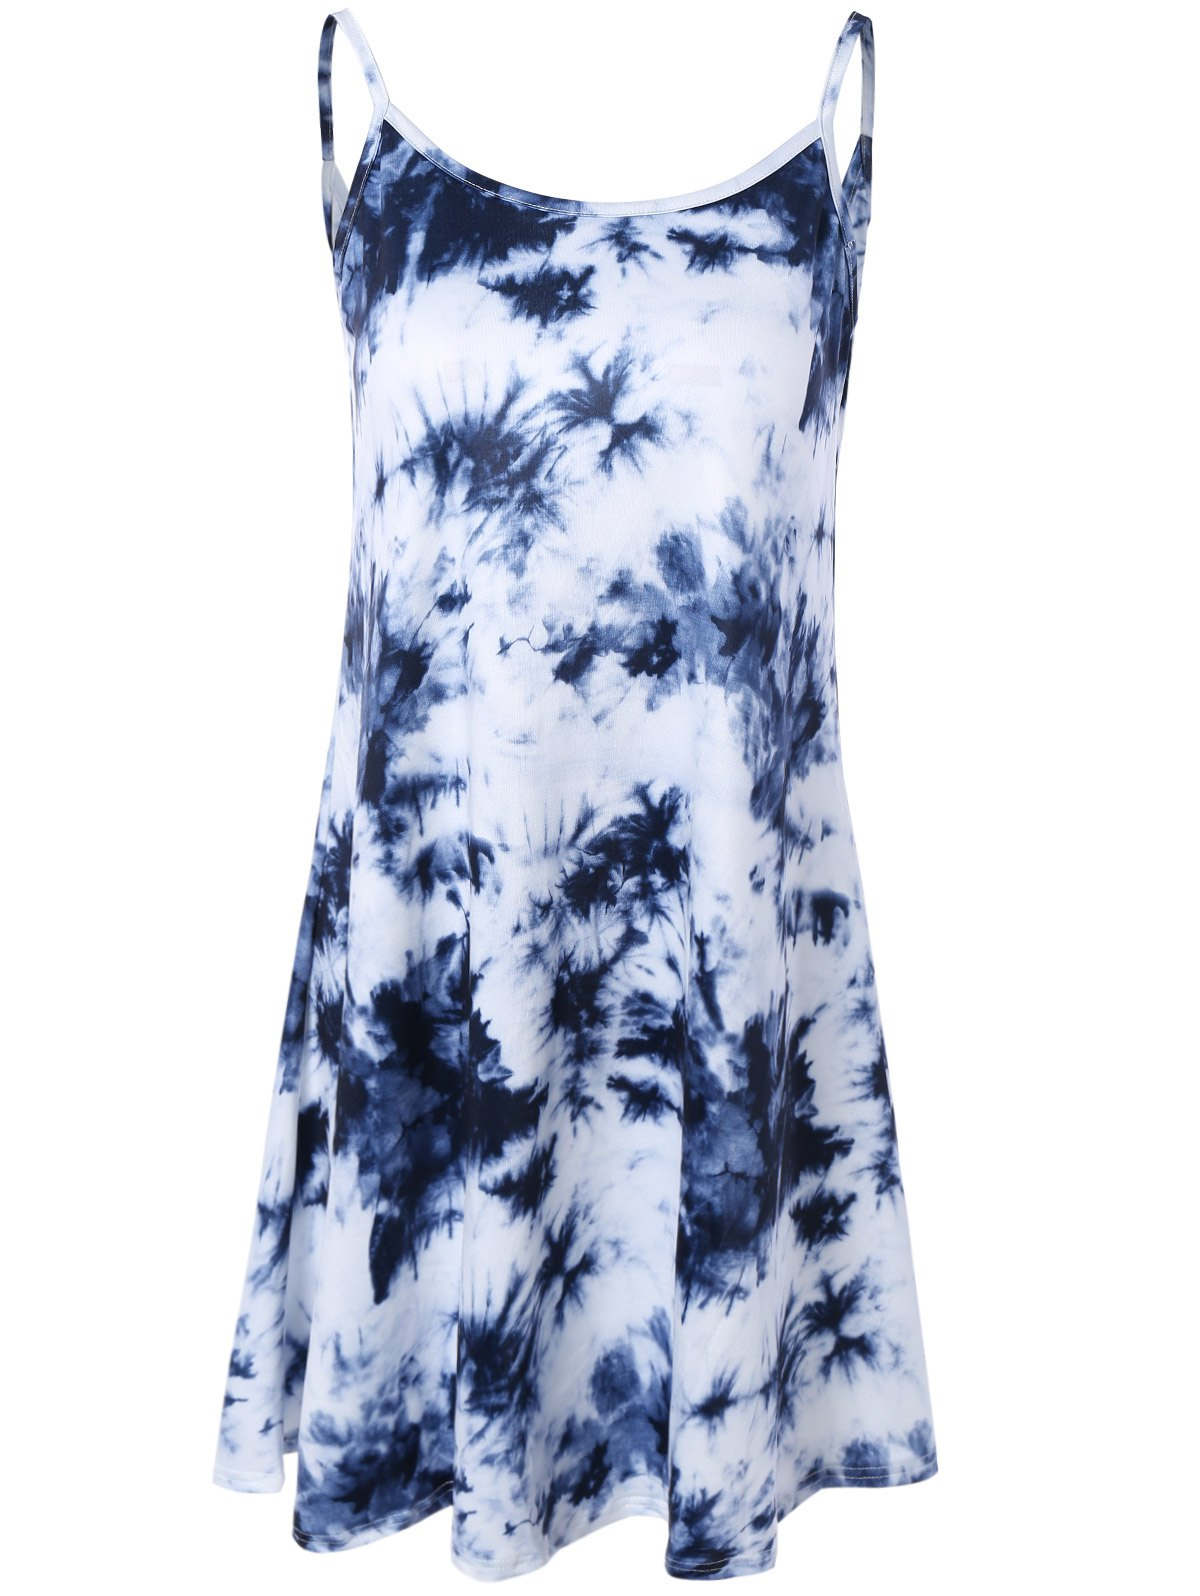 Fashion Tie Dye Summer Slip Dress